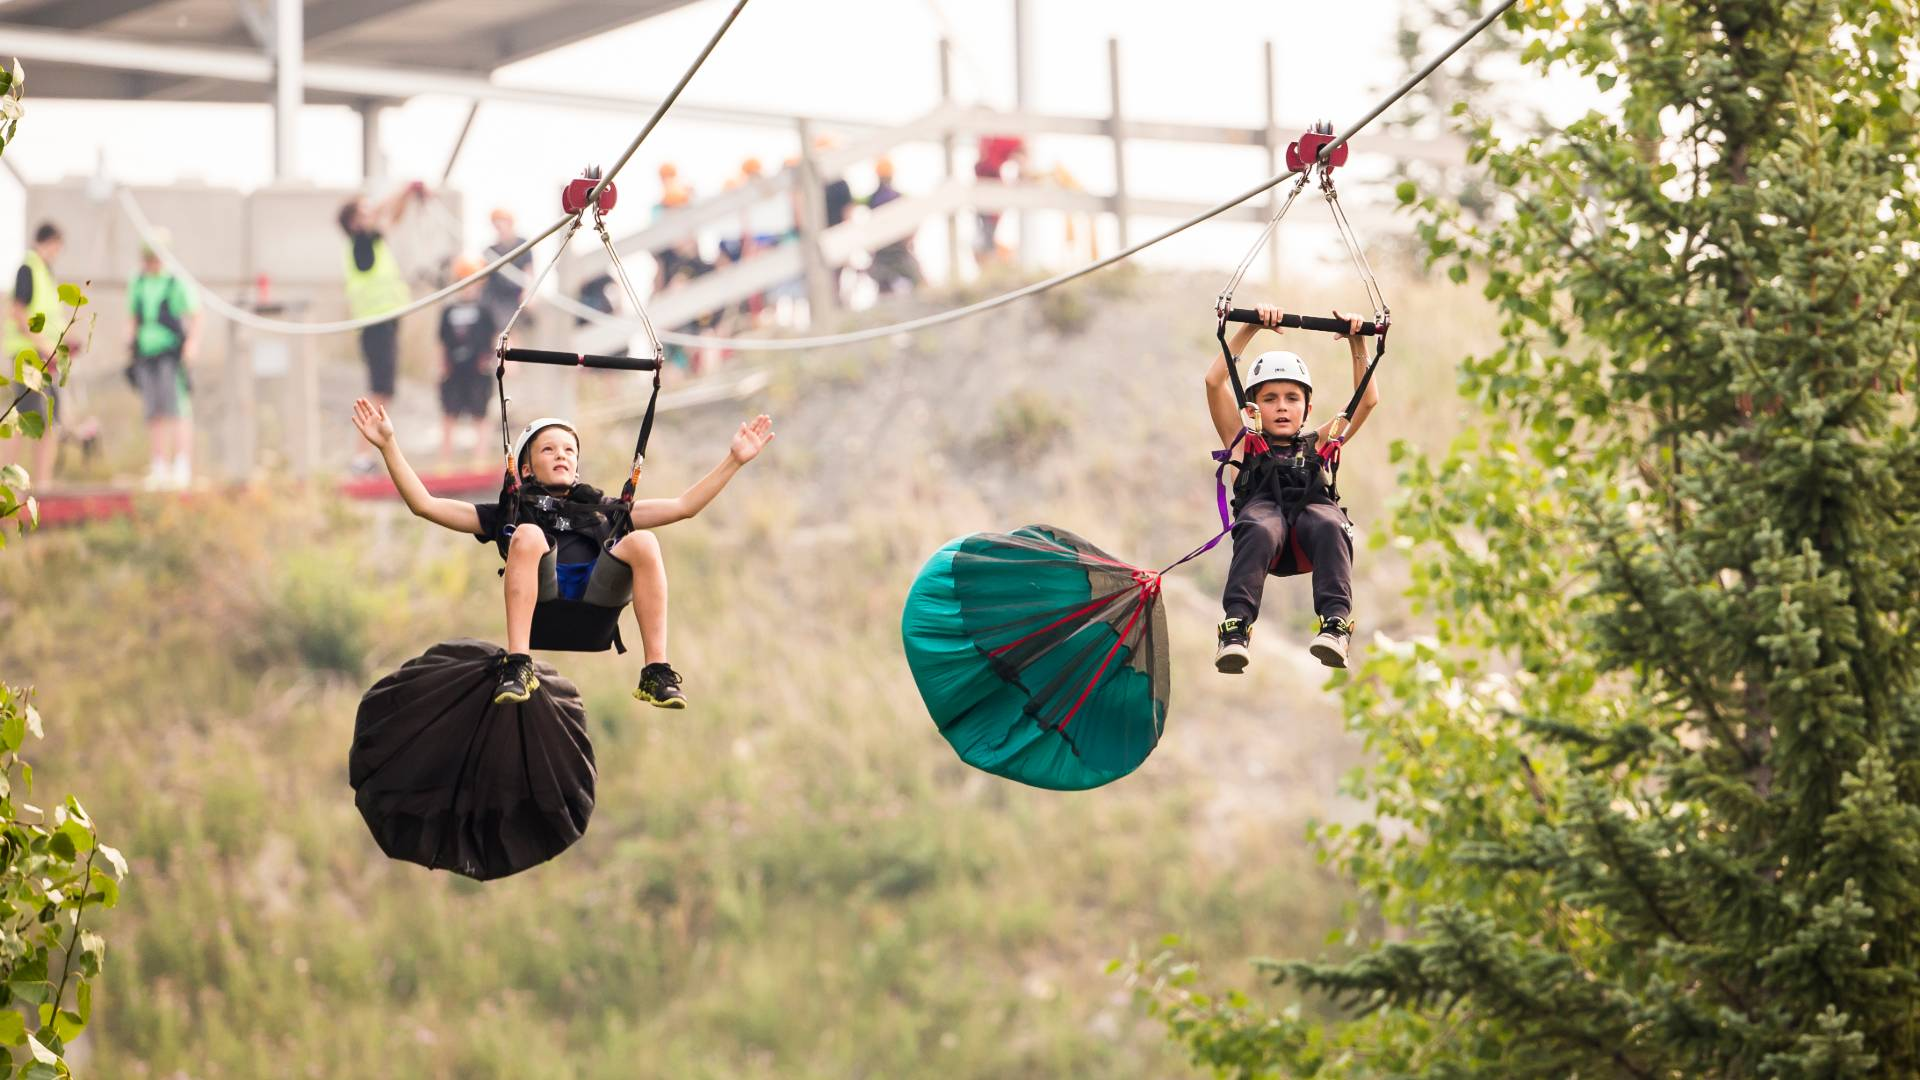 Winsport Zipline